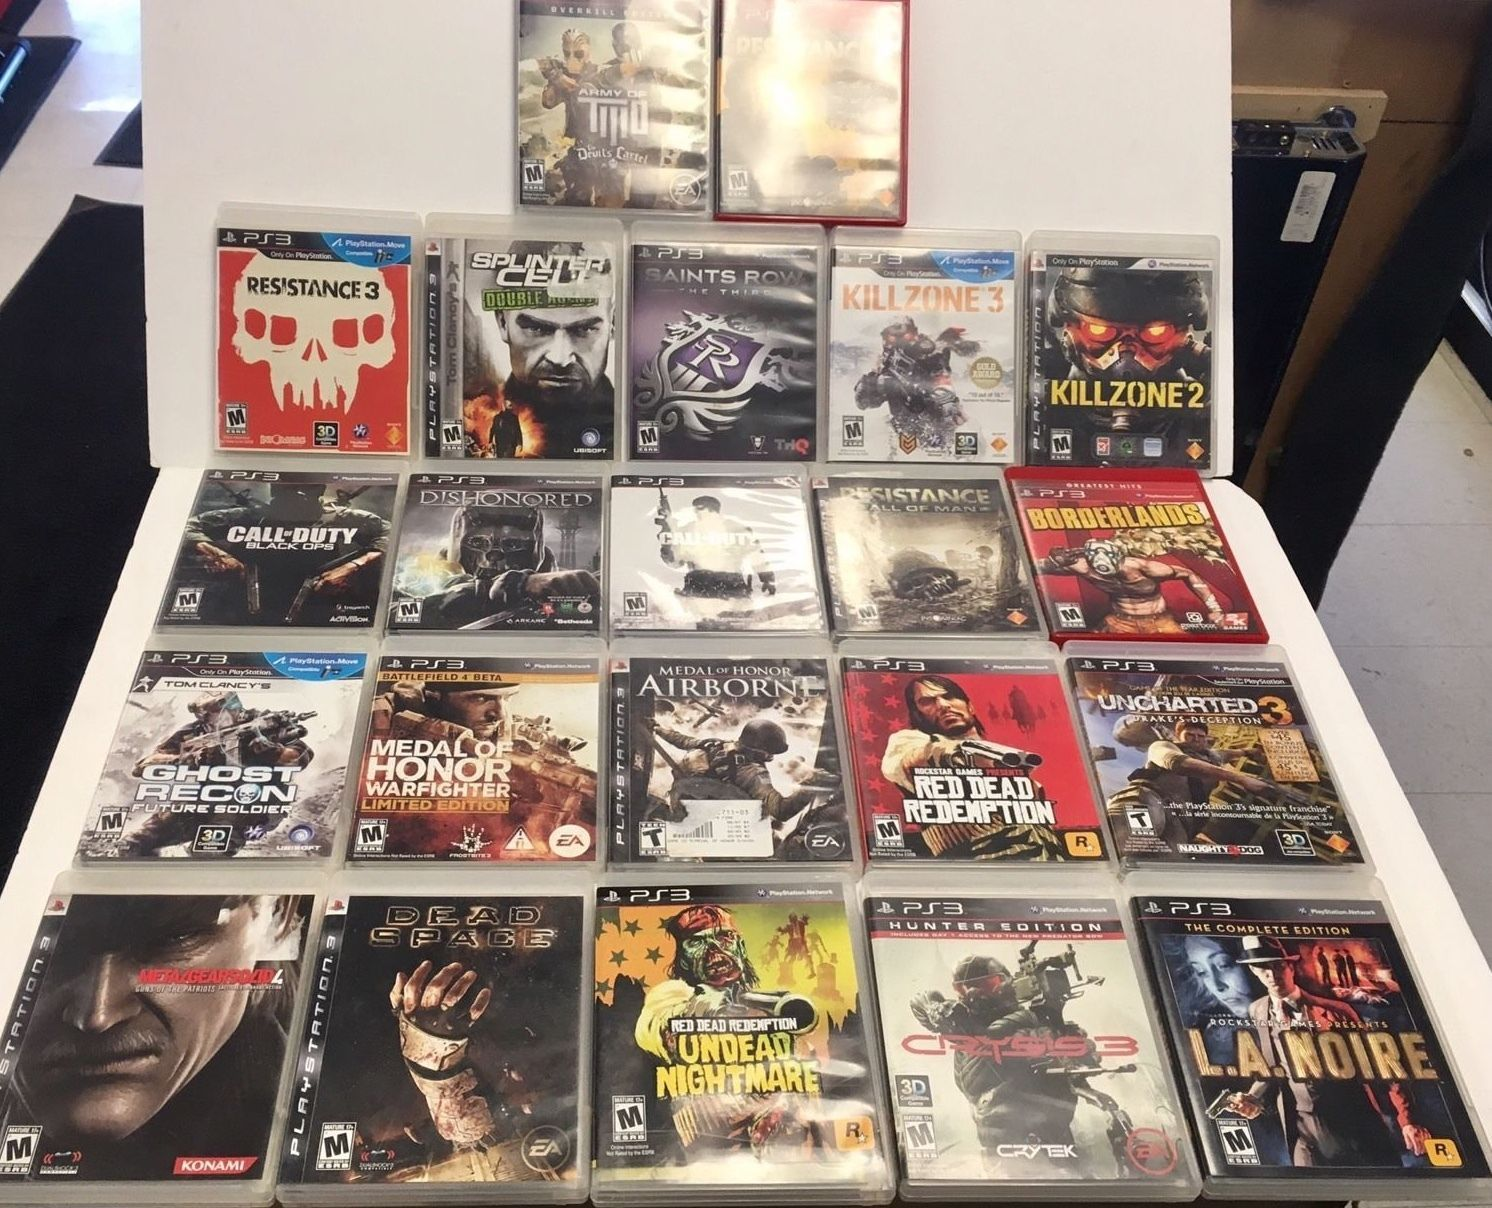 PS3 Bundle Of Very Exciting And Diverse Shooter Games - NR! https://t.co/AZpOKrMSIo https://t.co/RjHVuvvgz5